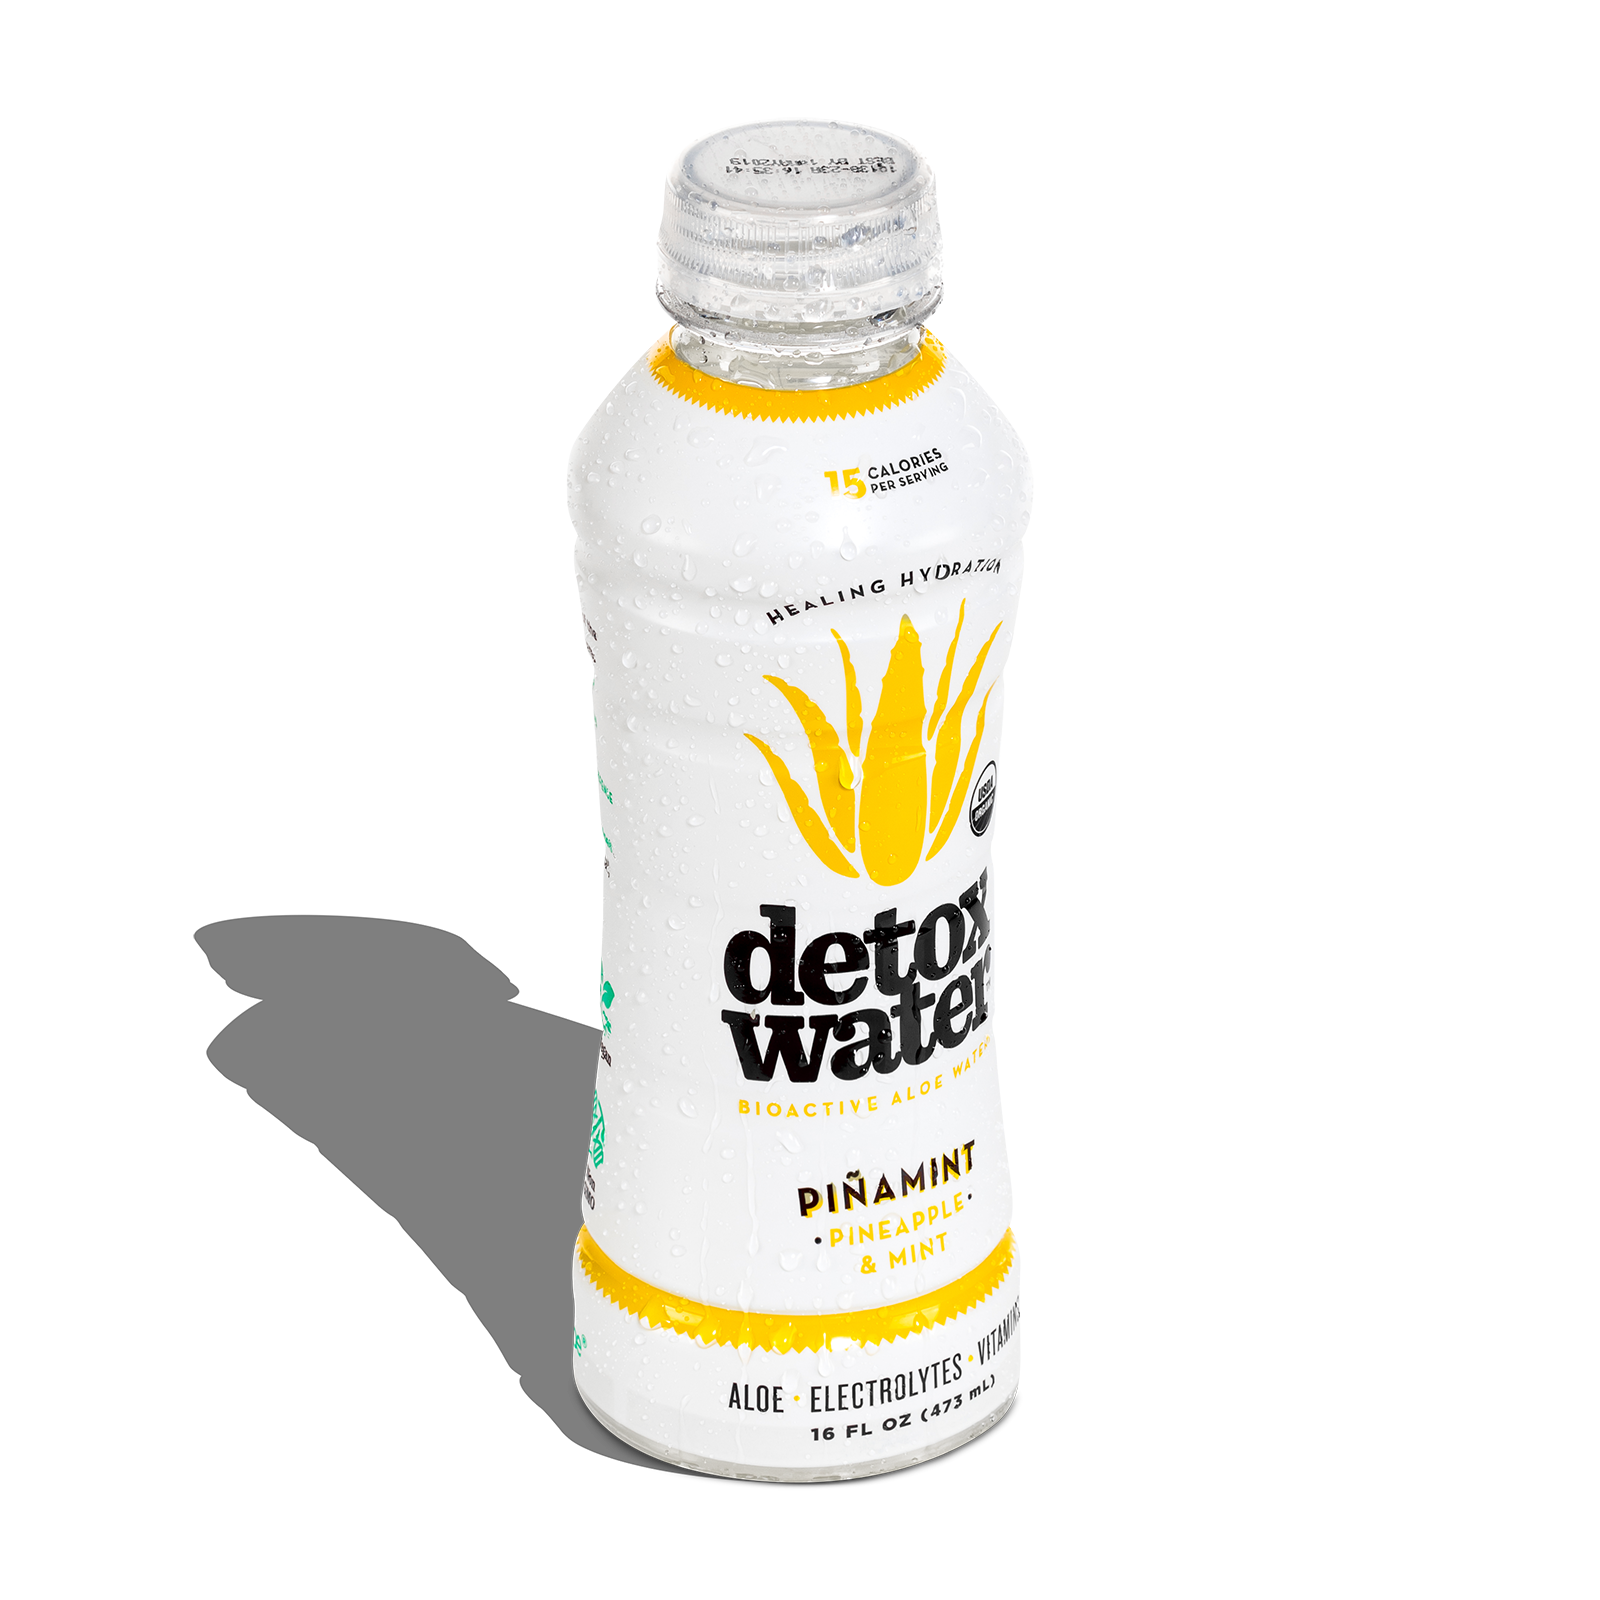 Beverage product picture